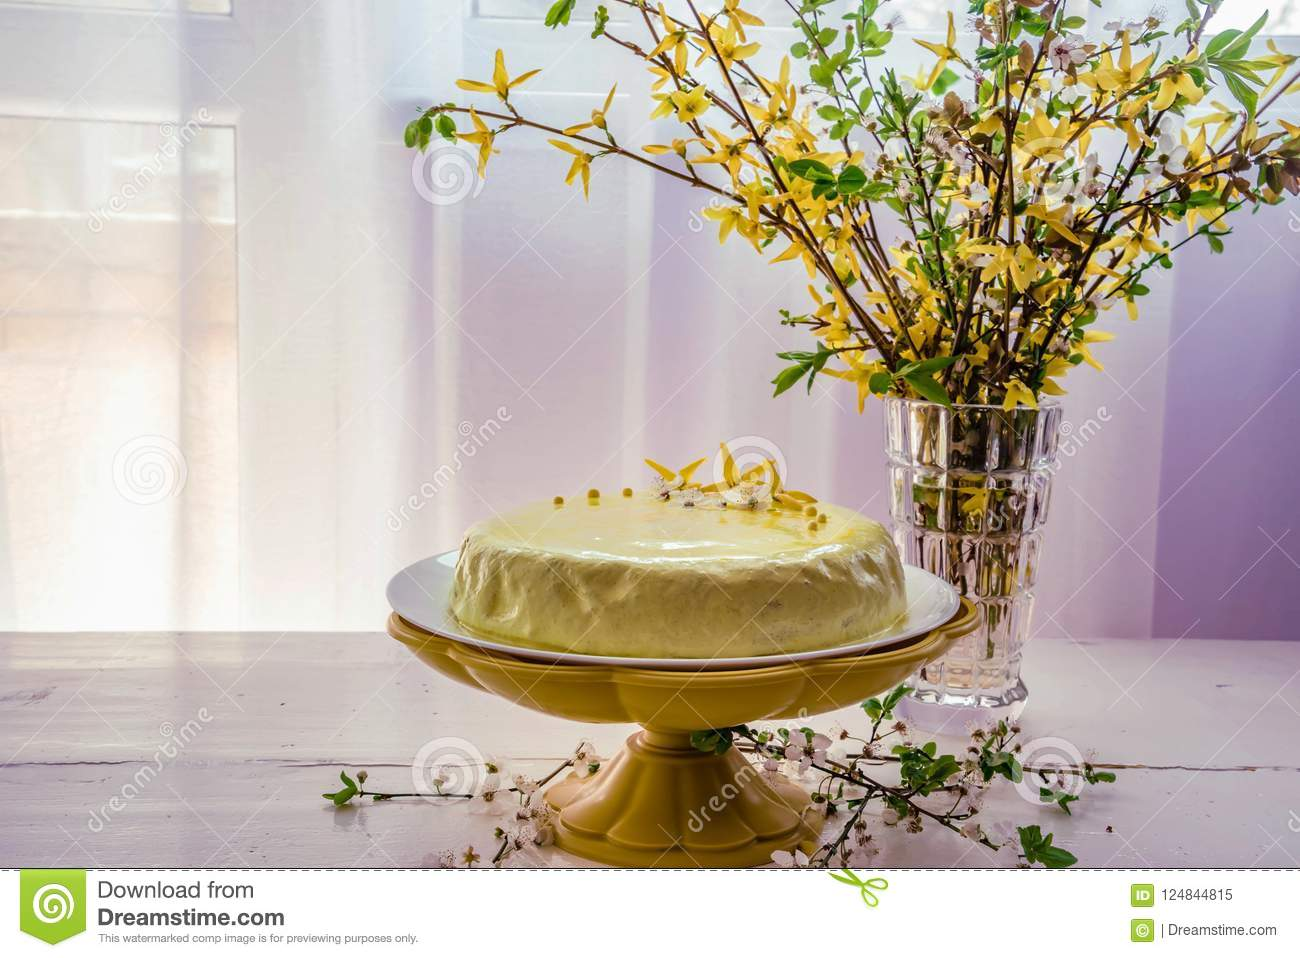 Awesome A Cake With Lemon And Coconut On A Yellow Tray And A Bouquet Of Funny Birthday Cards Online Elaedamsfinfo